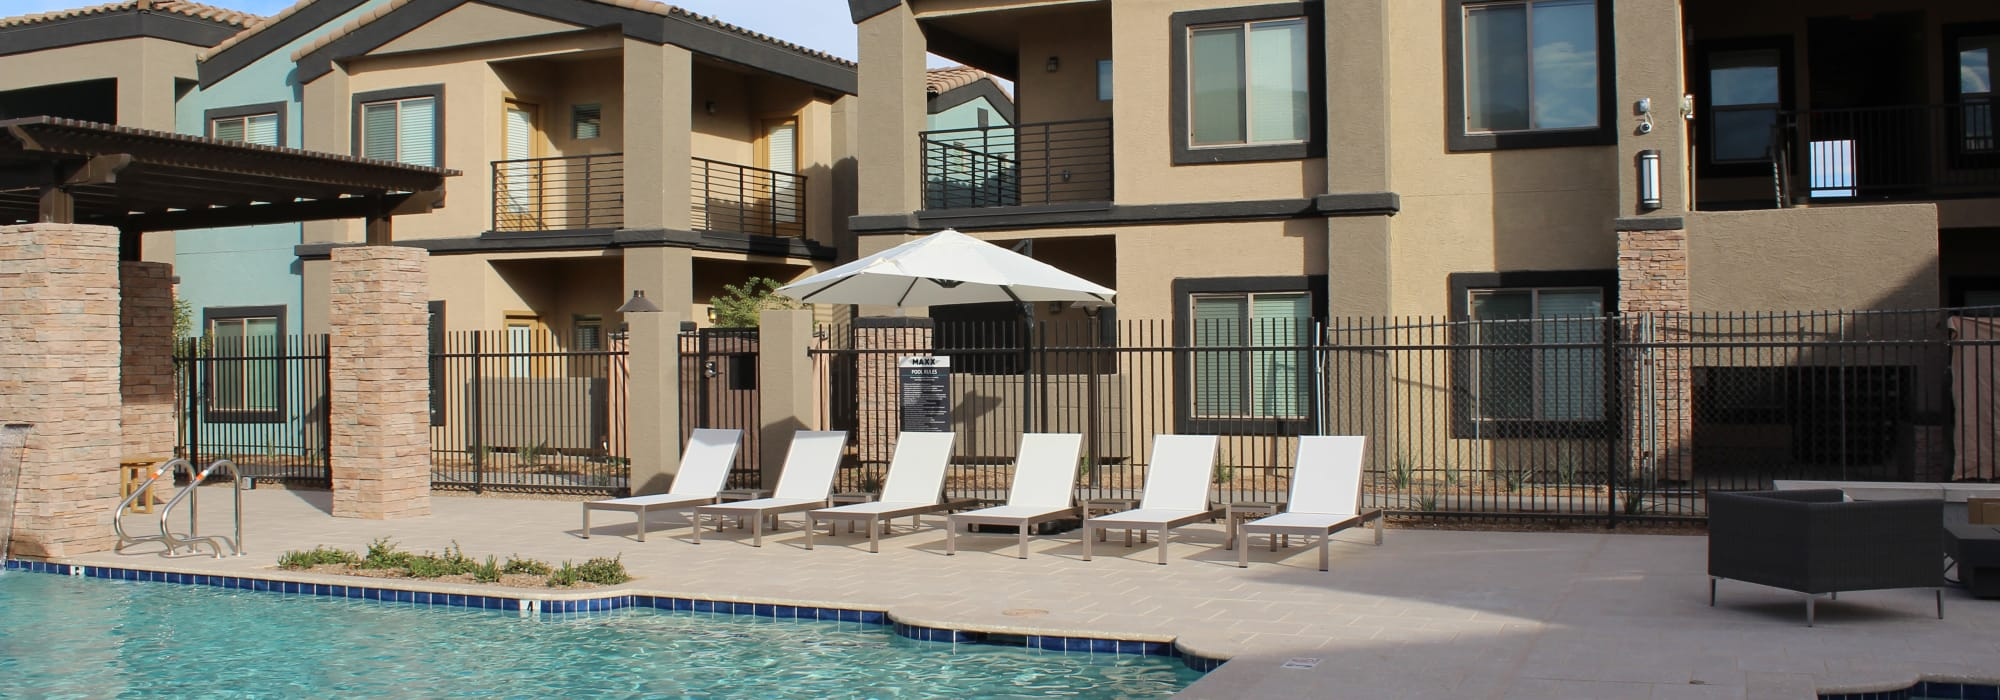 Luxury pool with poolside lounge chairs at The Maxx 159 in Goodyear, Arizona